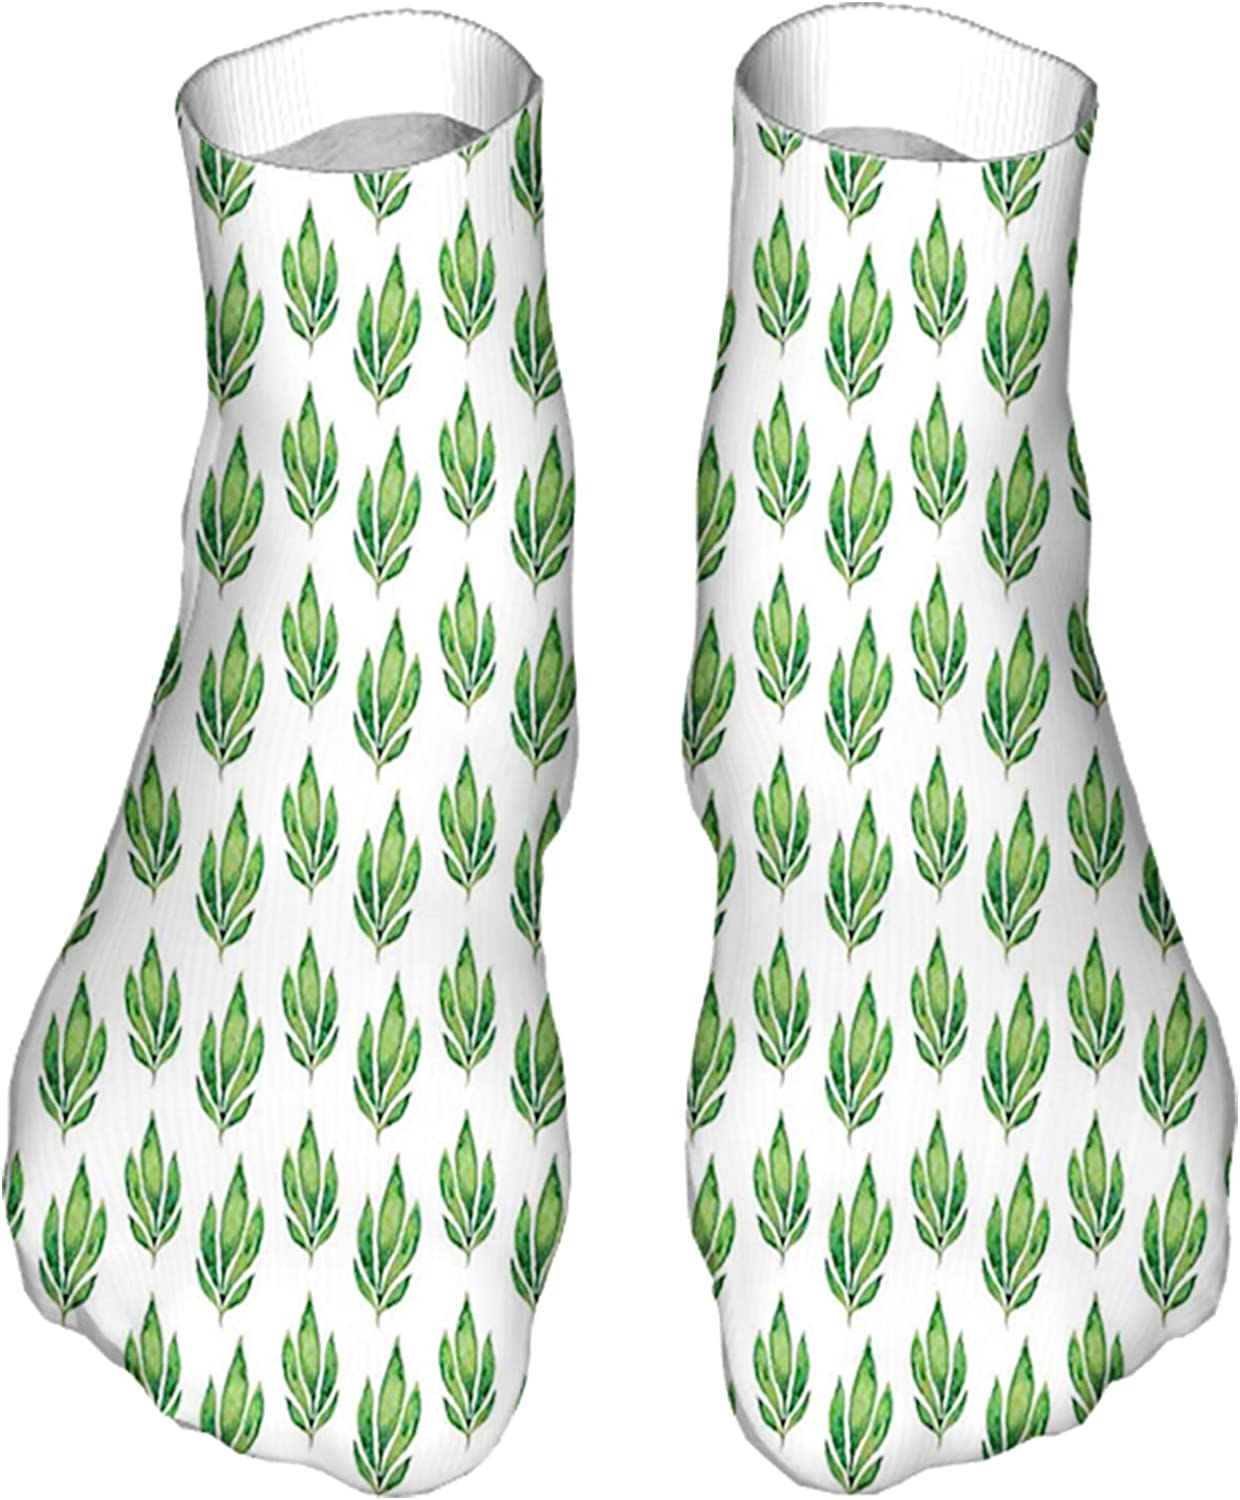 Women's Colorful Patterned Unisex Low Cut/No Show Socks,Herbal Pattern with Watercolor Foliage Tropical Nature